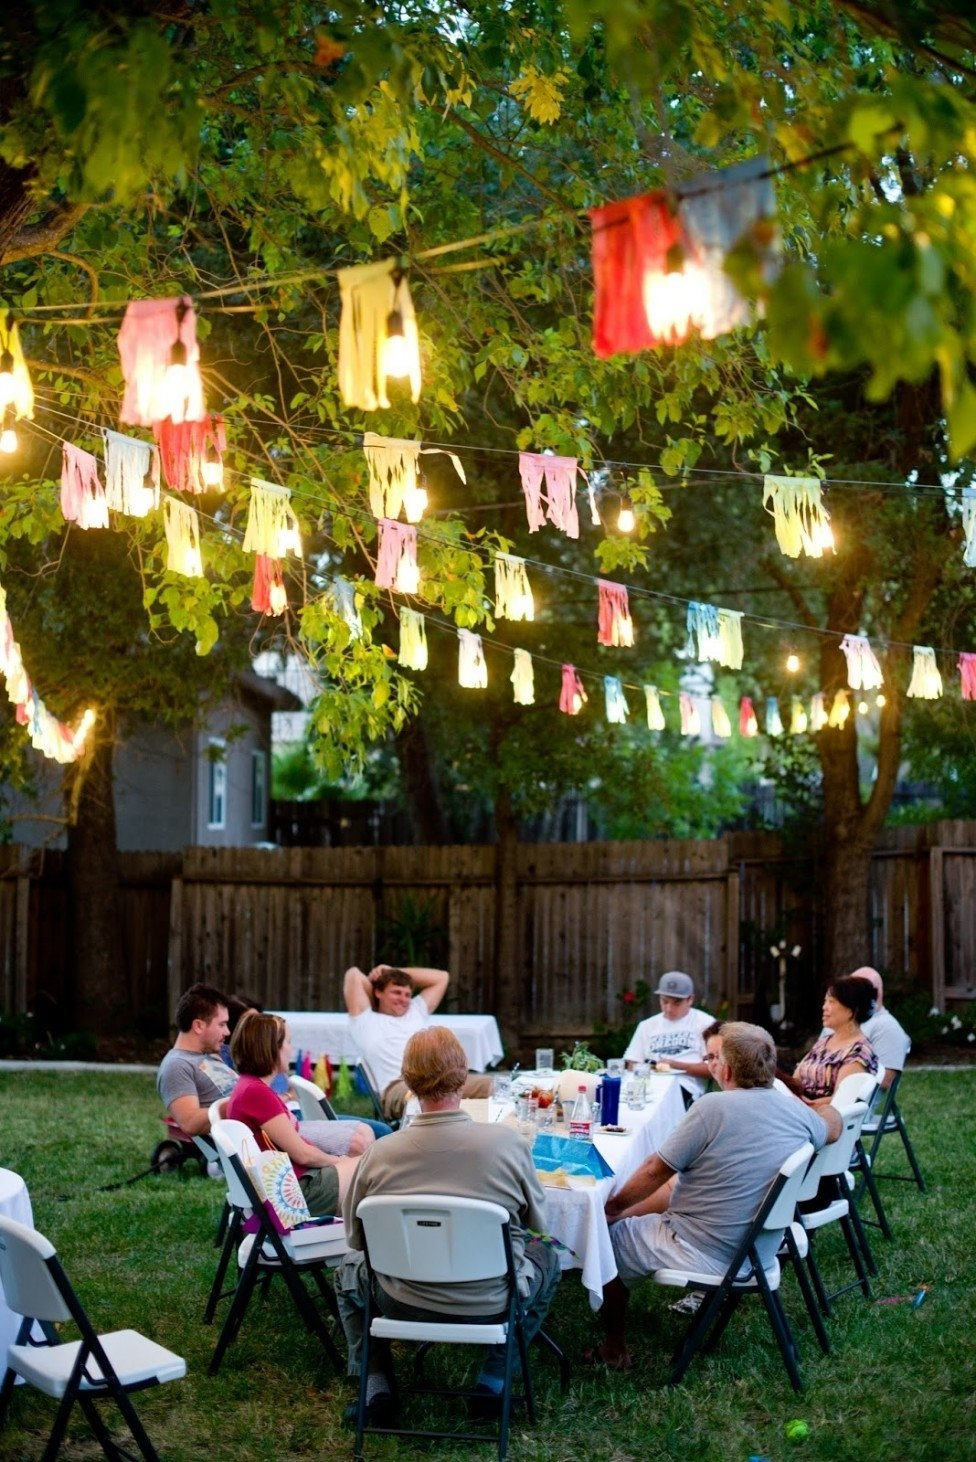 10 Unique Birthday Party Ideas For Adults pinmalia myers on bonfire bohemian party pinterest 18th 2020